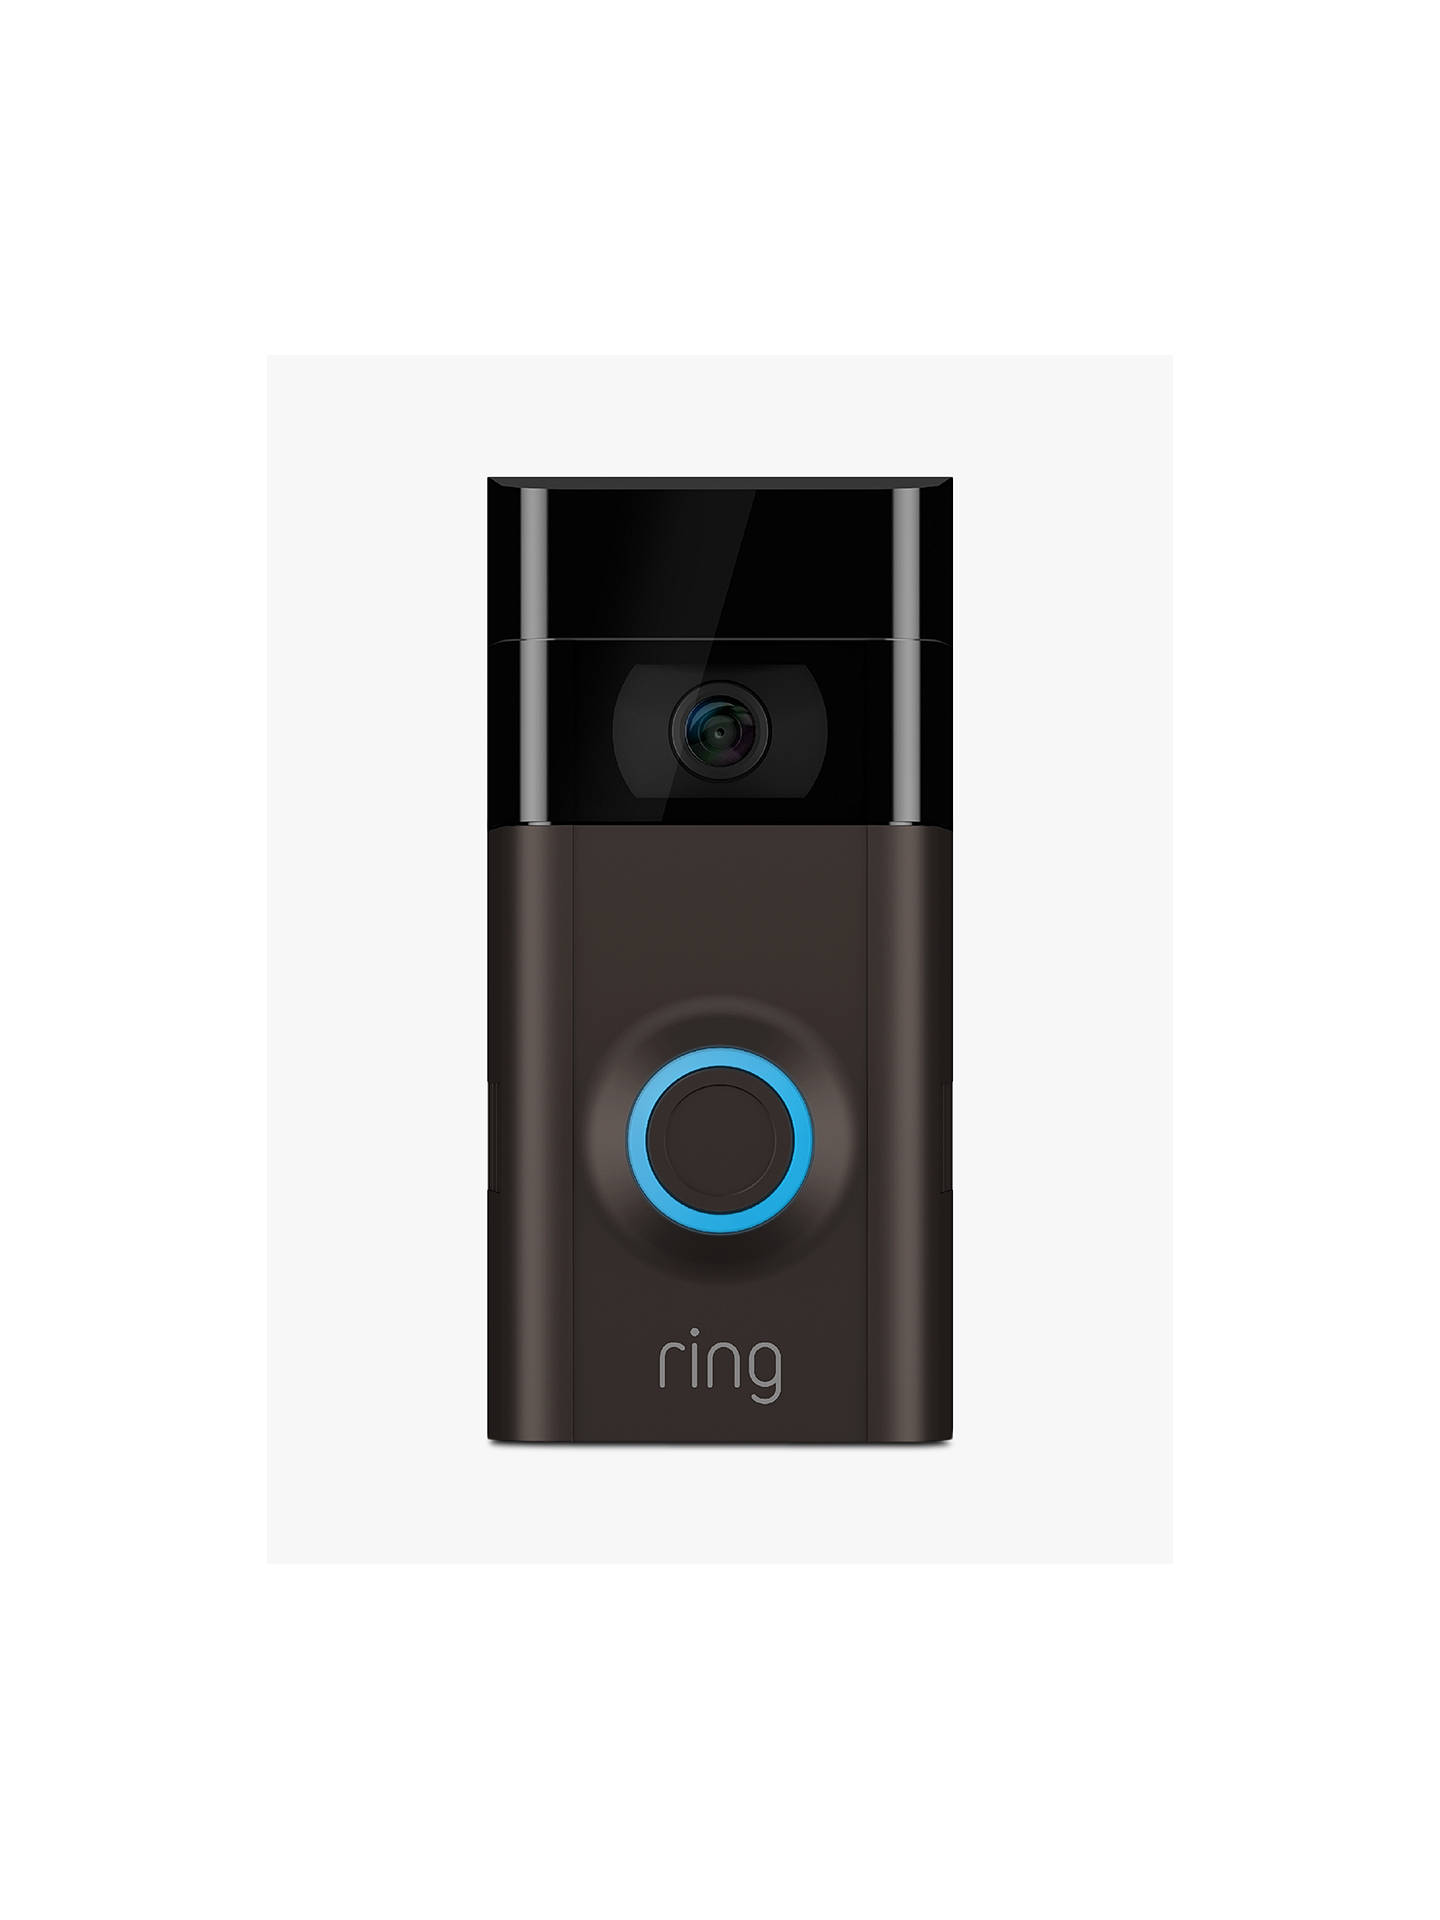 d51cdf5961f48 Ring Smart Video Doorbell 2 with Built-in Wi-Fi & Camera